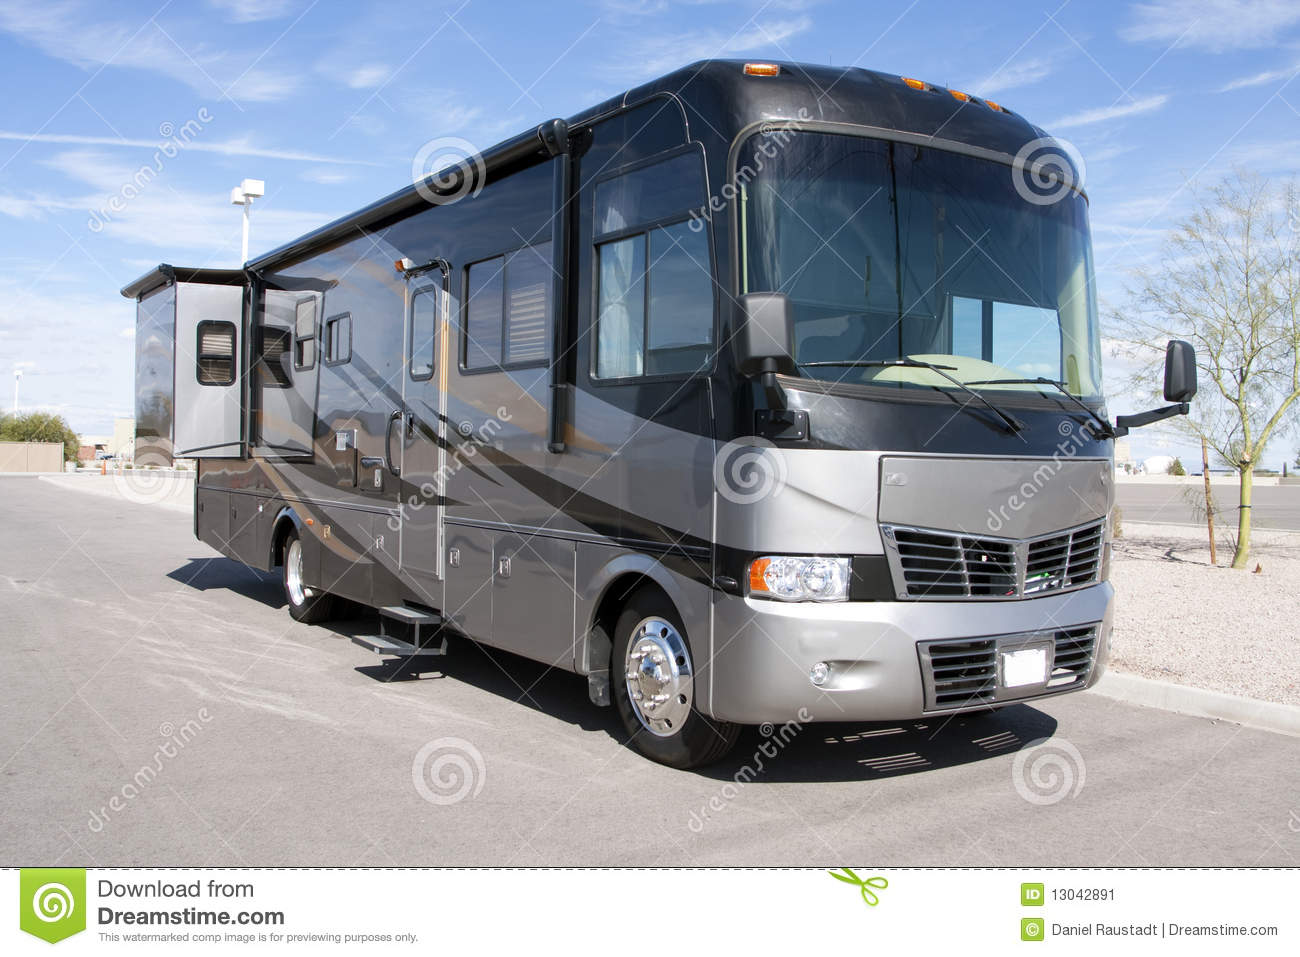 New Luxury Motor Home Rv Coach Stock Image Image Of Fuel Coach 13042891